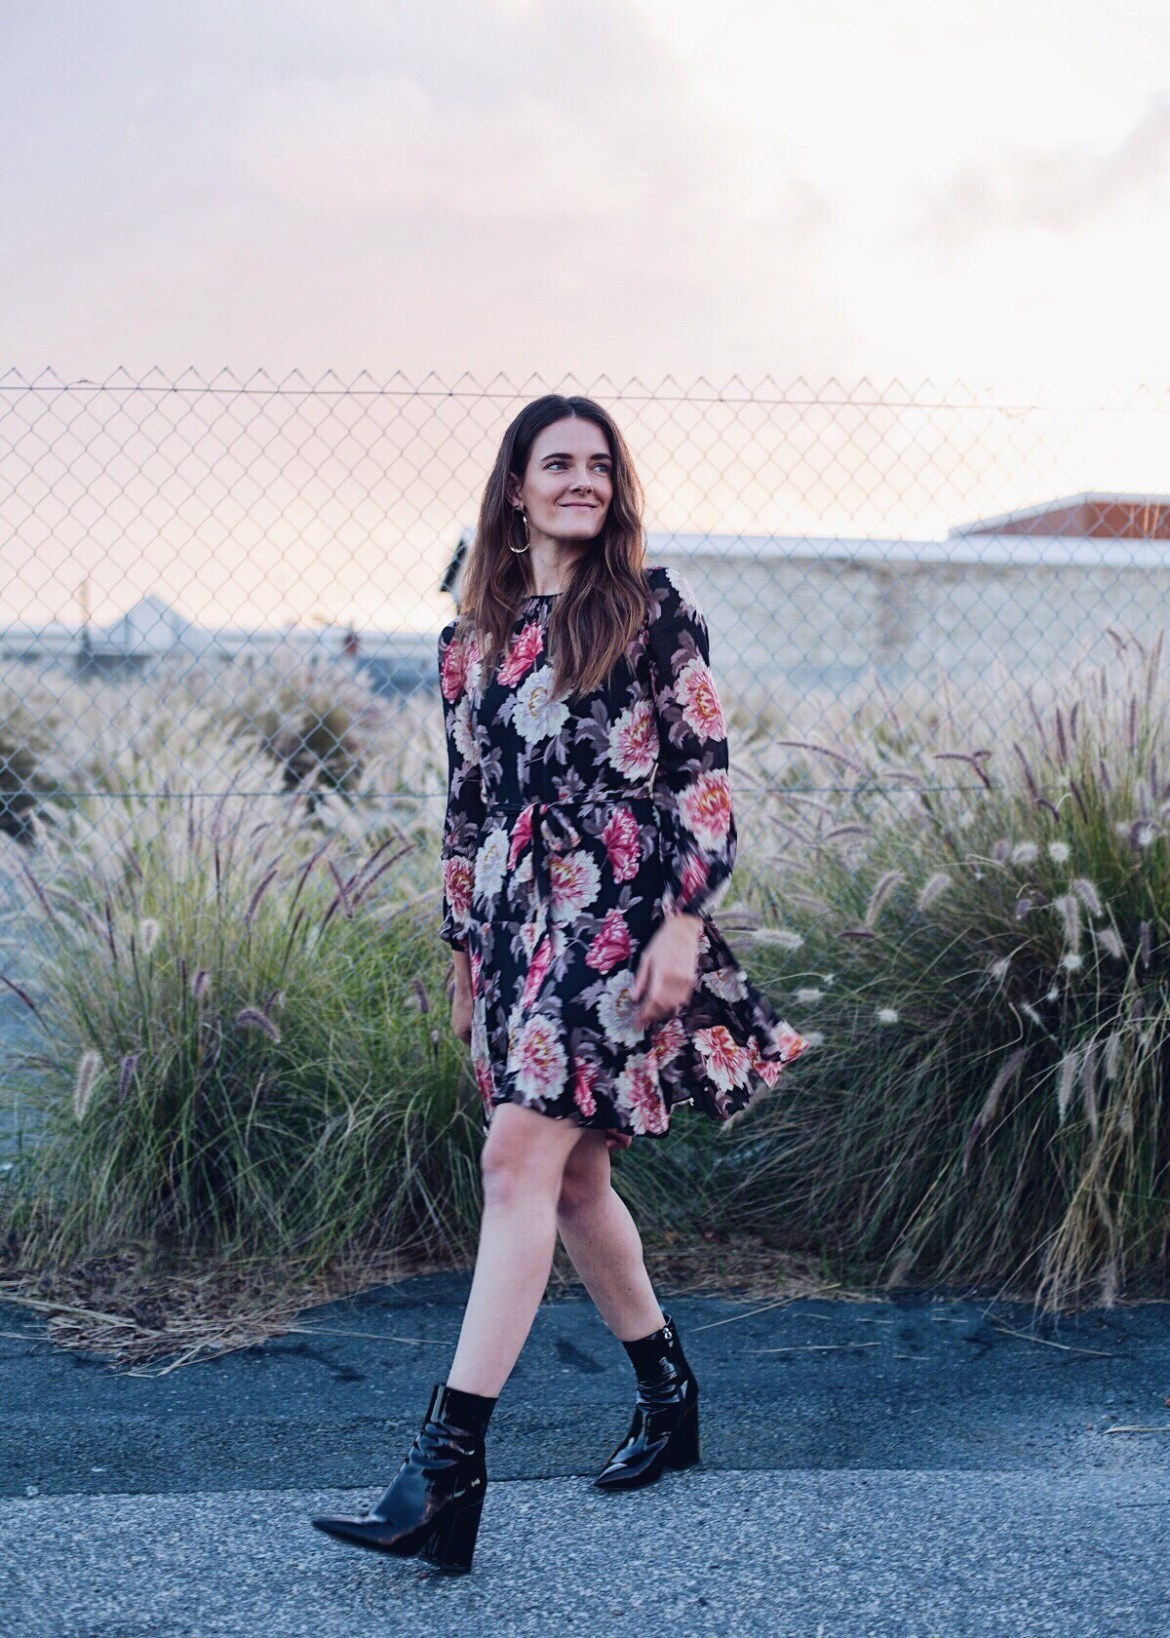 Rodeo Show Ciel floral dress worn with Alias Mae patent black boots by Inspiring Wit fashion blogger Jenelle